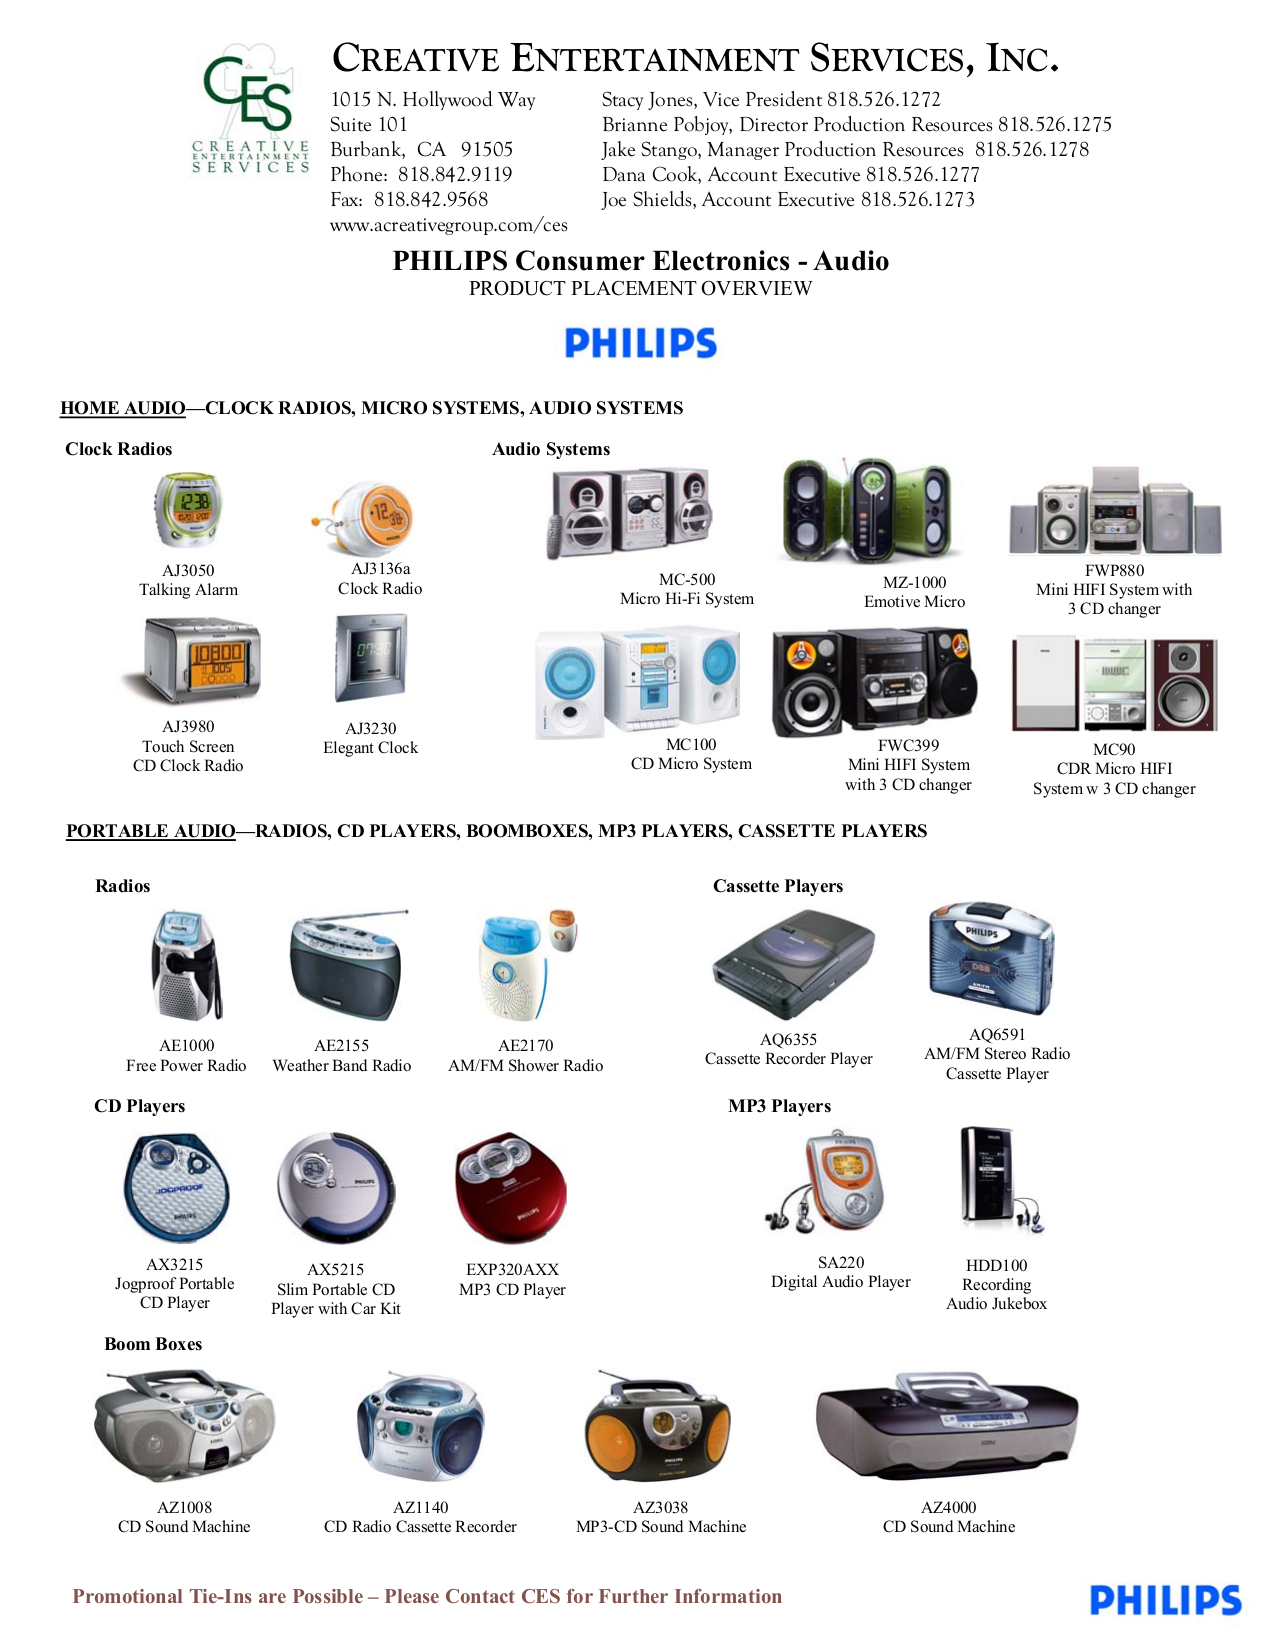 pdf for Philips Boombox AZ1008 manual